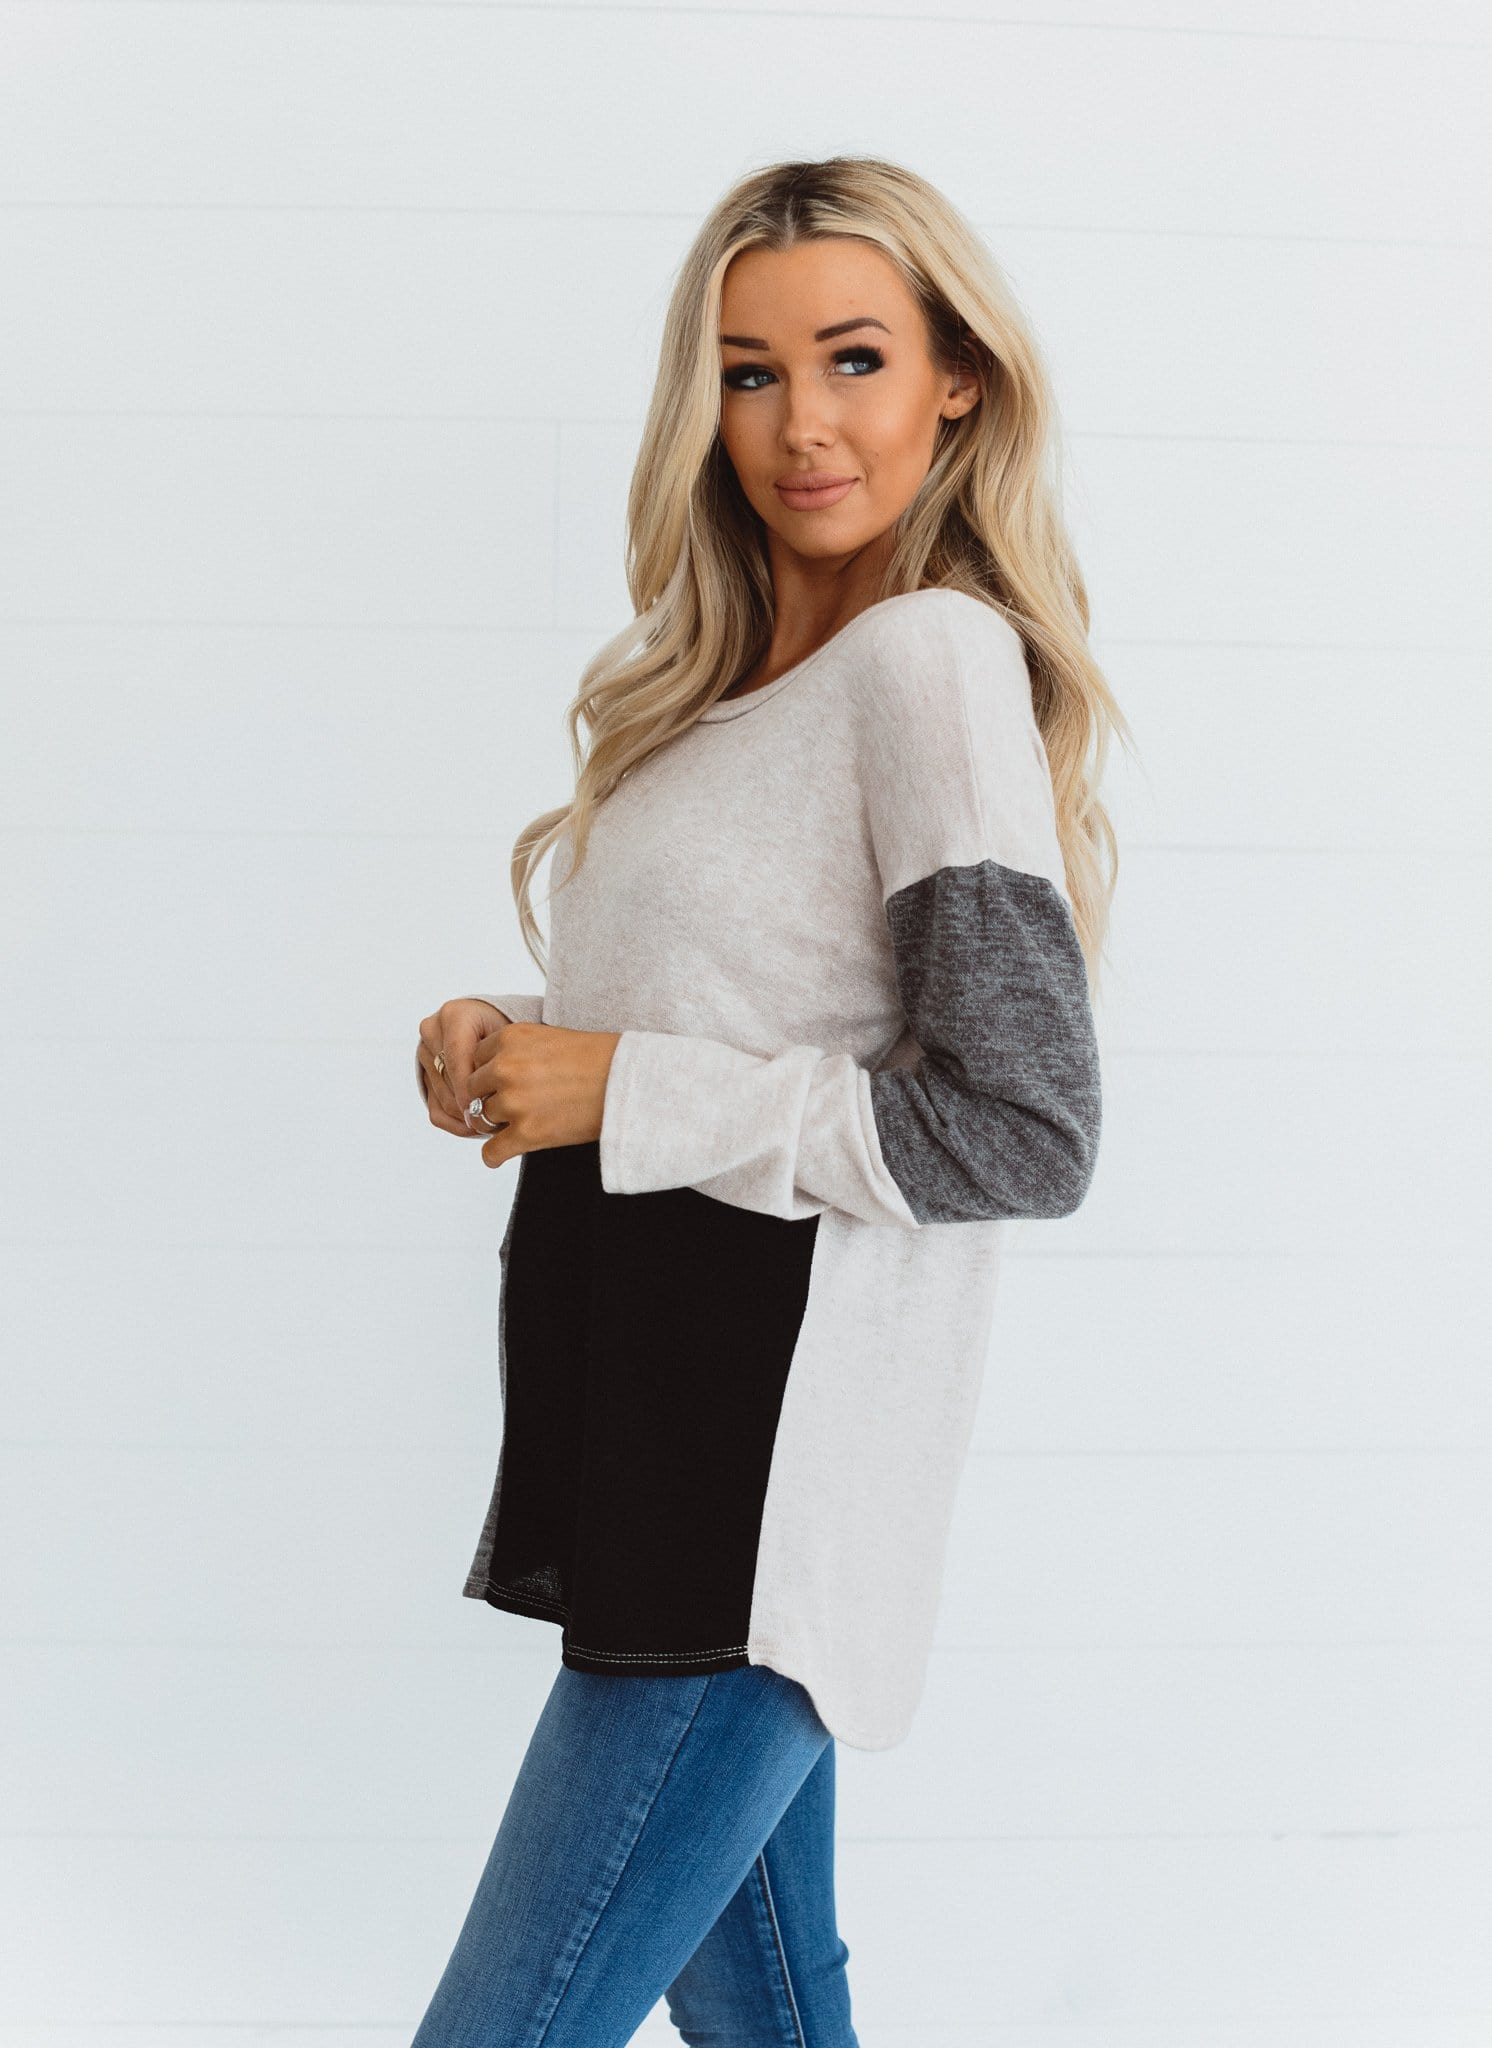 The Anja Color Block Sweater in Mocha/Black